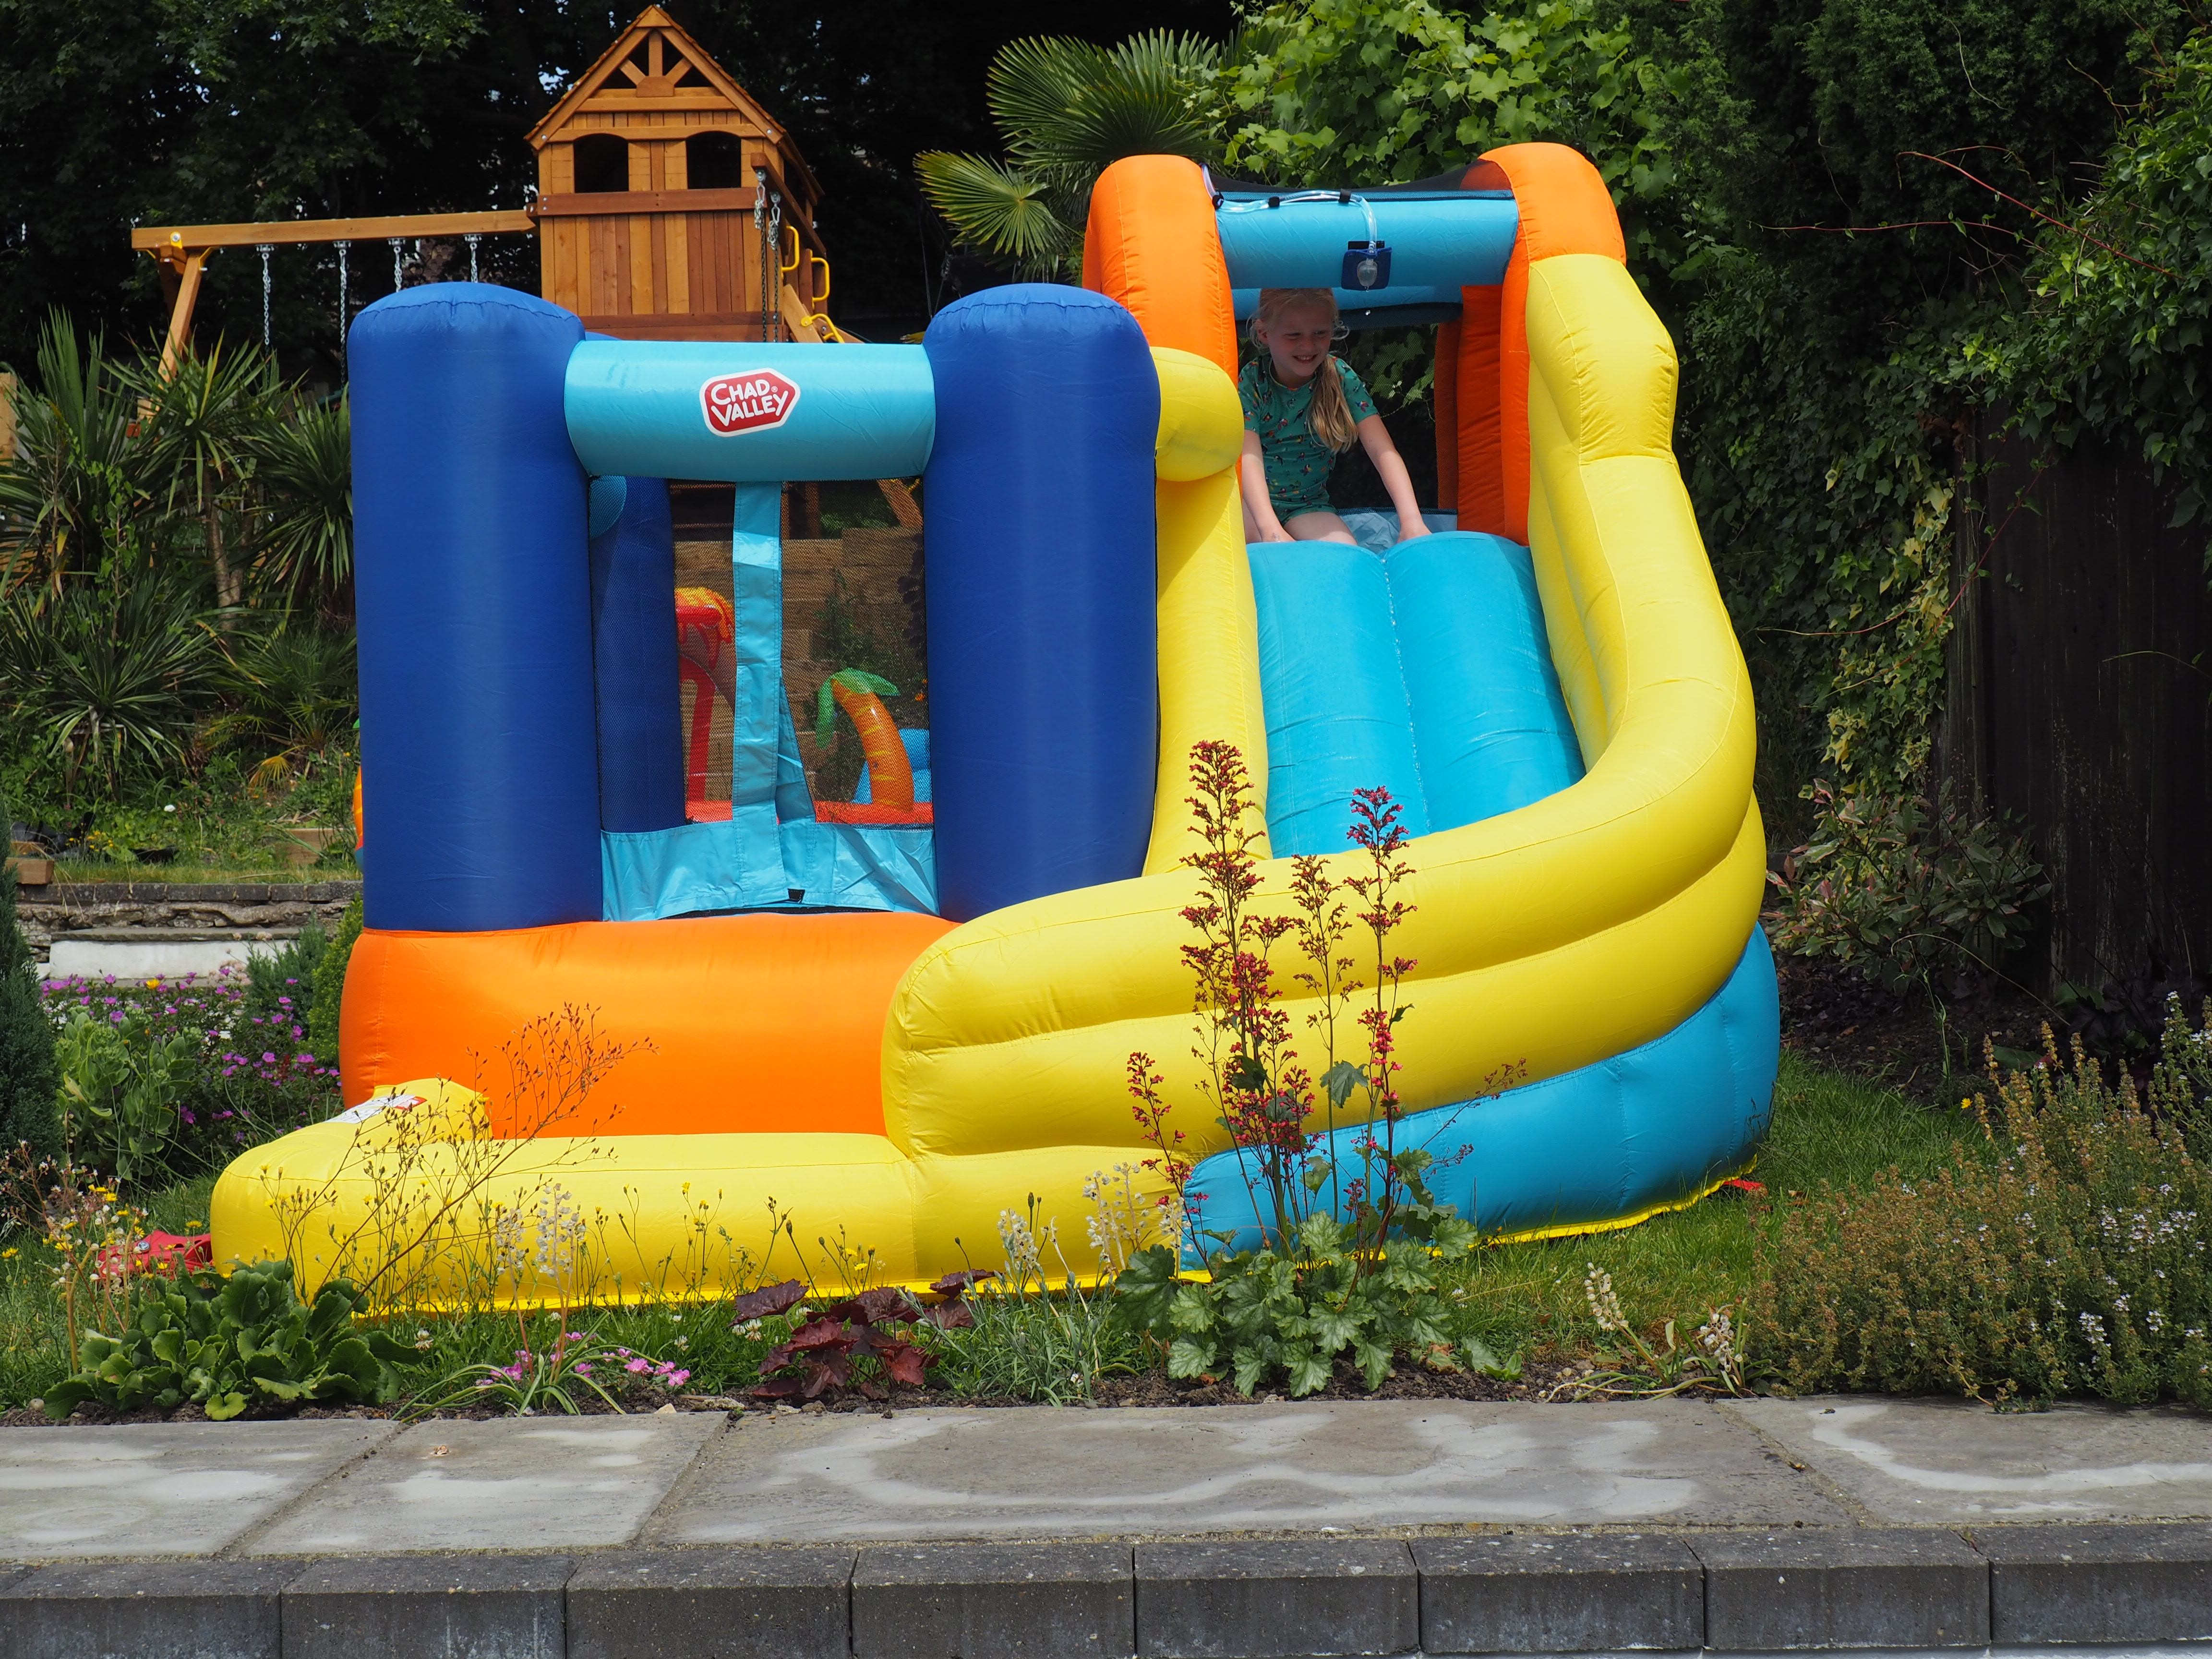 Chad Valley Inflatable Fun House